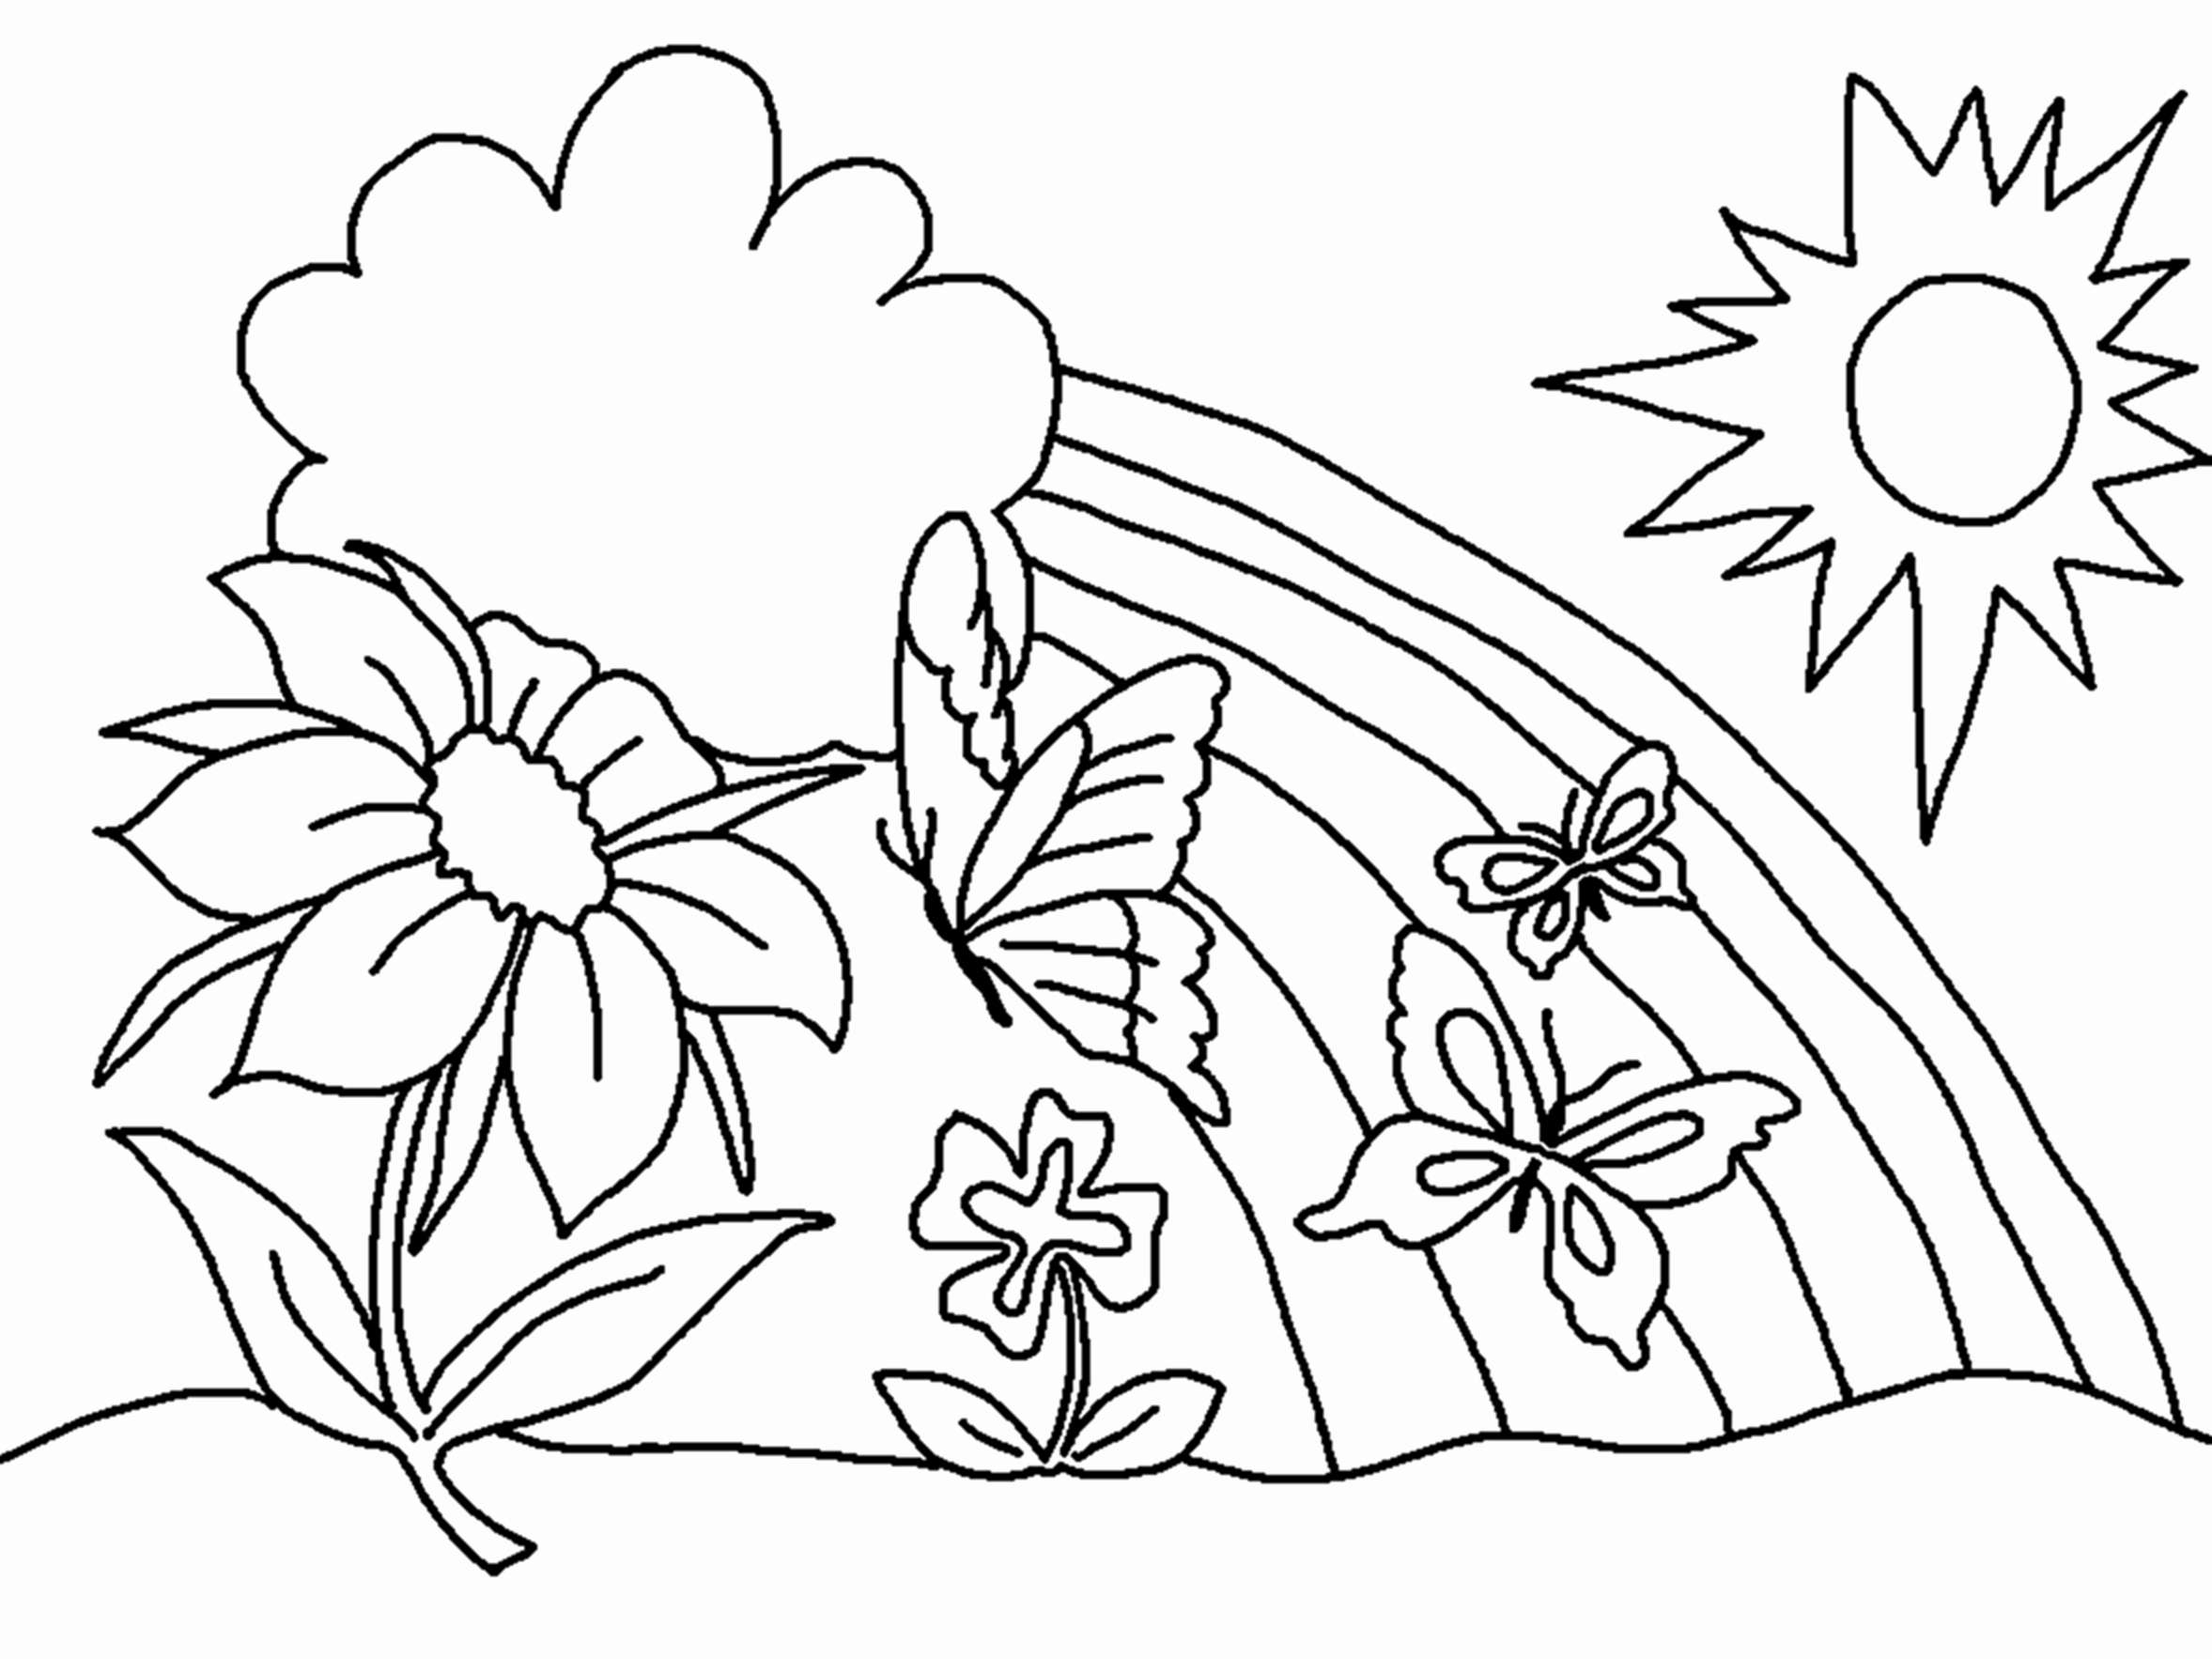 Girl Scout Law Coloring Pages  Gallery 20c - Free For Children